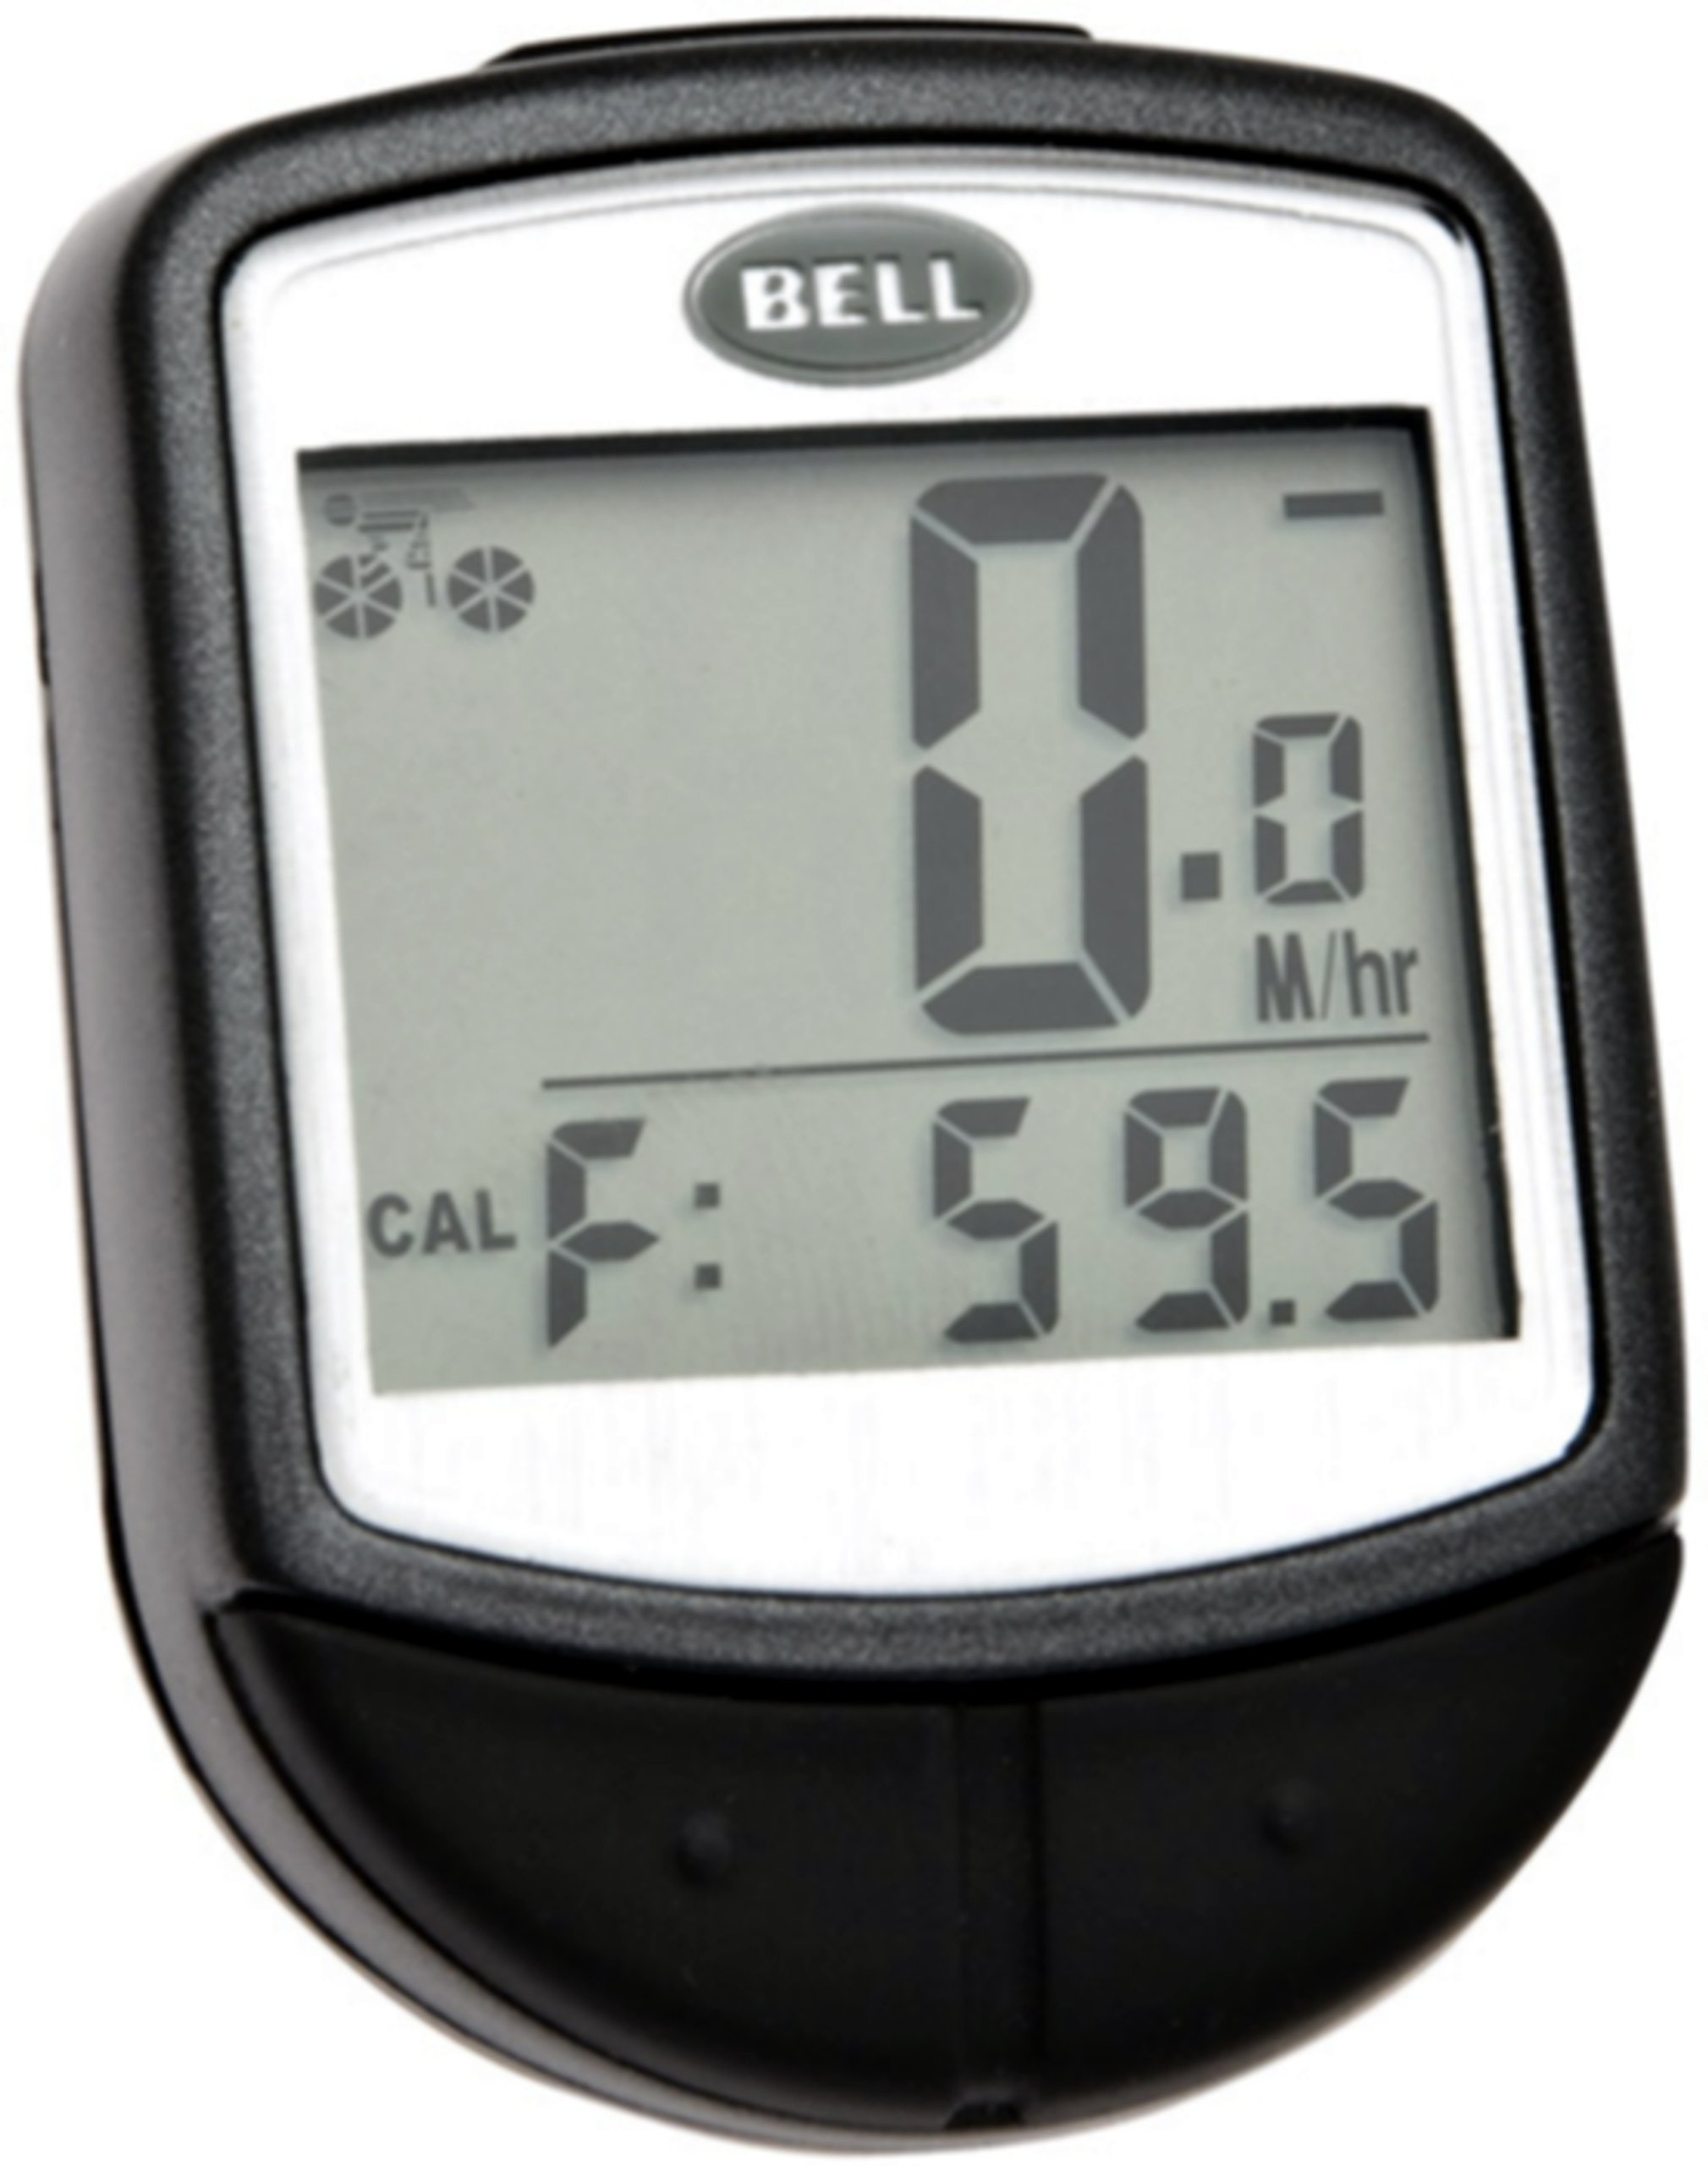 Bell Console 300 16-Function Cyclometer, Black